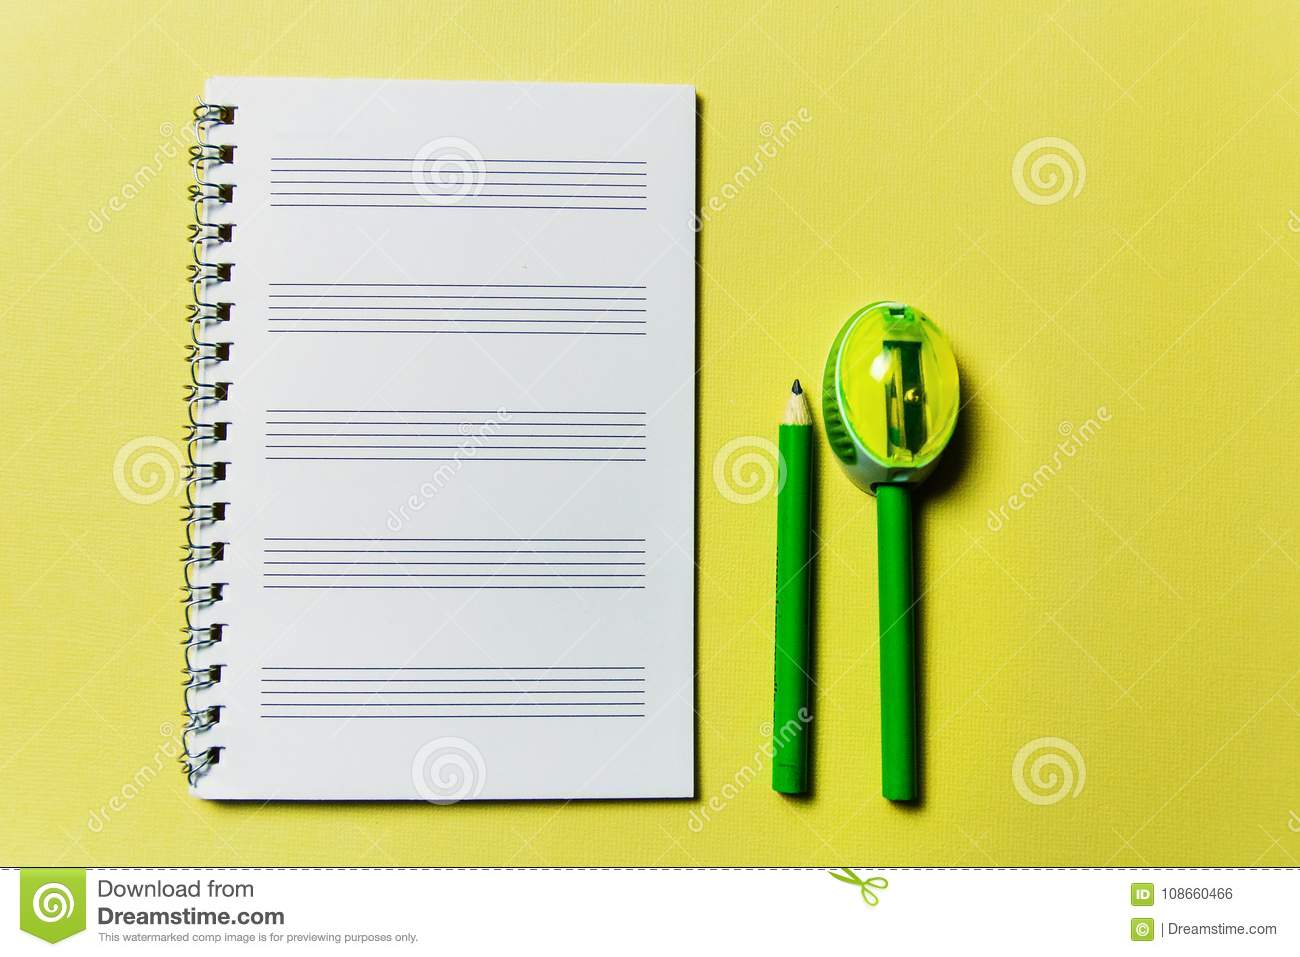 notebook and a green pencil and pencil sharpener on yellow